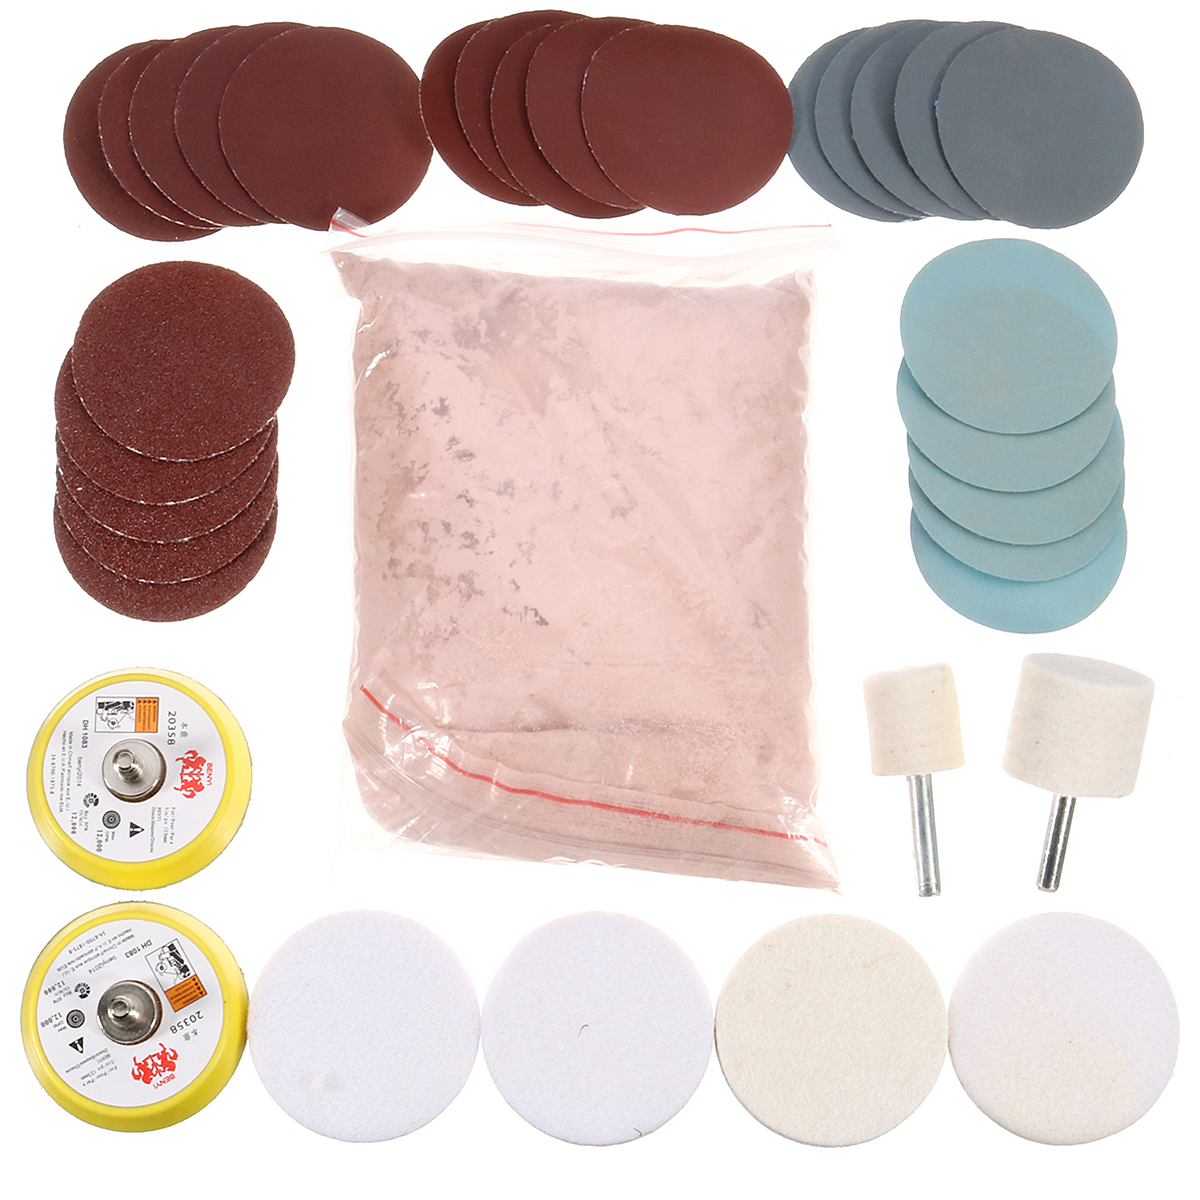 34Pcs Deep Scratch Remove Glass Polishing Kit 8Oz Cerium Oxide Sanding Disc Wool Polishing Pads Felt Polishing Wheel DIY Tools-in Polishing Pads from Tools